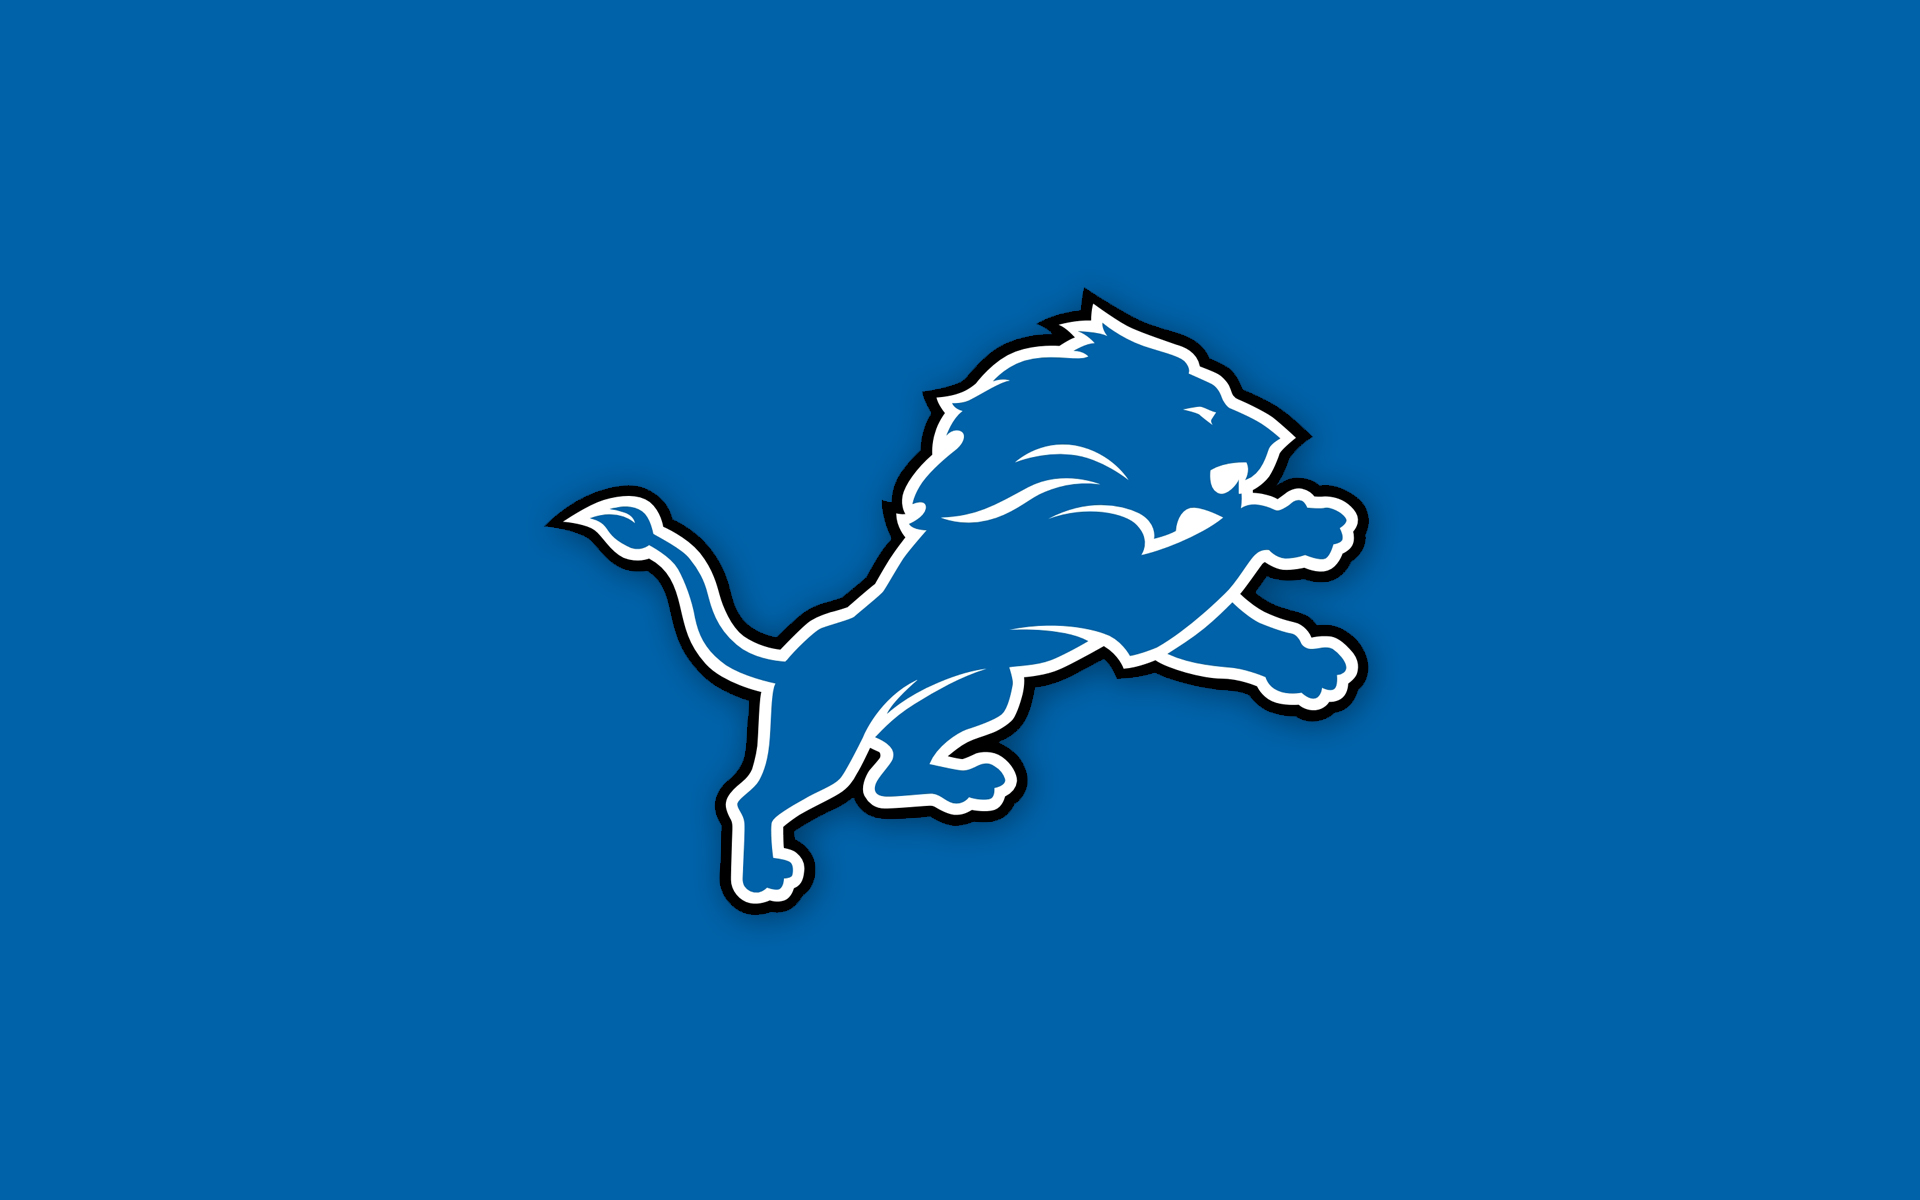 Good Wallpaper Logo Lion - detroit-lions-wallpaper-14648-15112-hd-wallpapers  Graphic_355865.jpg